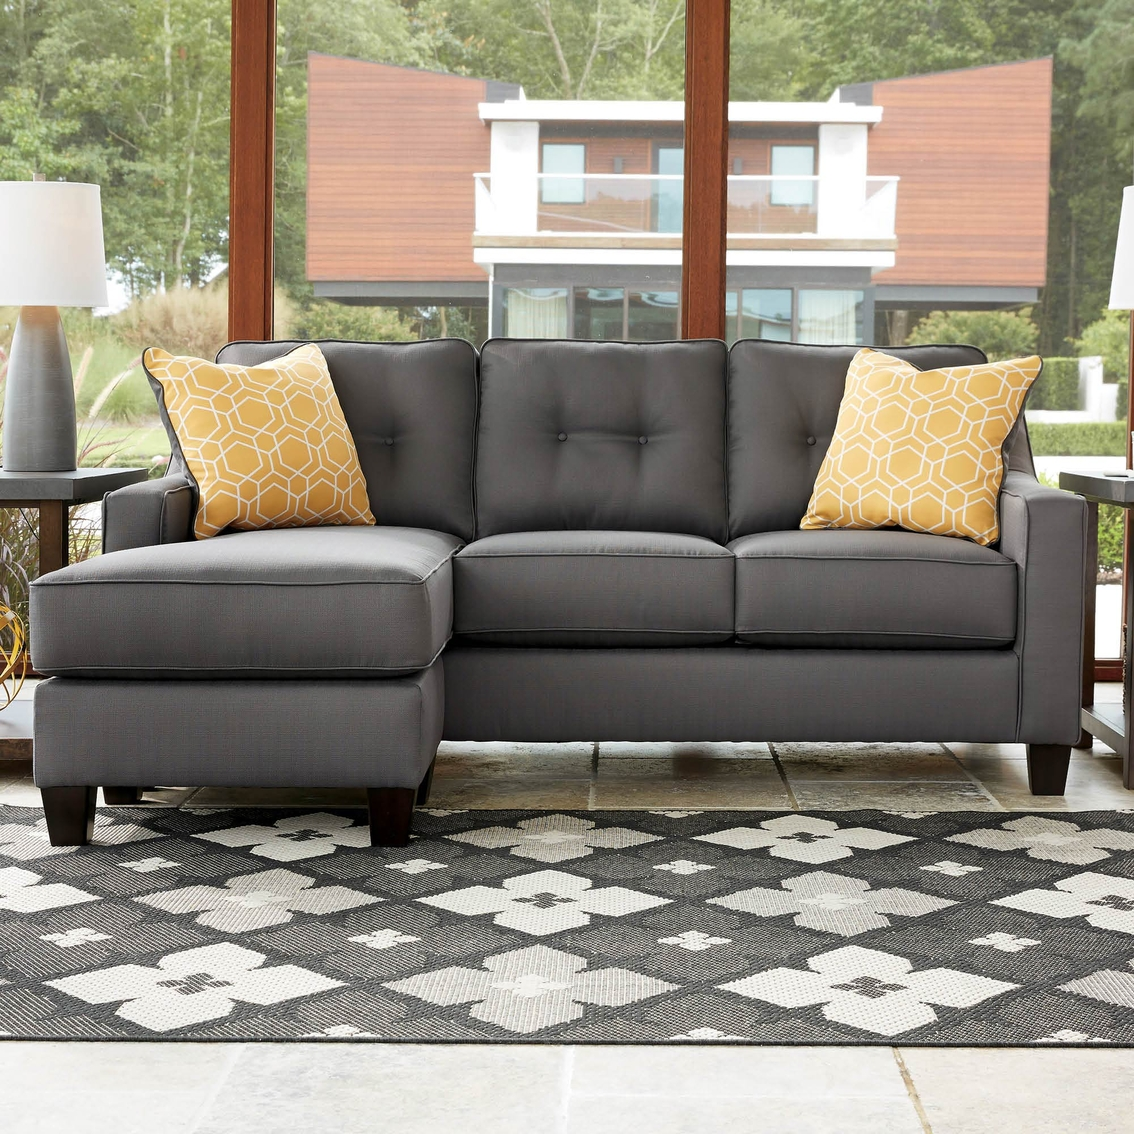 Benchcraft Aldie Nuvella Sofa Chaise Sofas Amp Couches